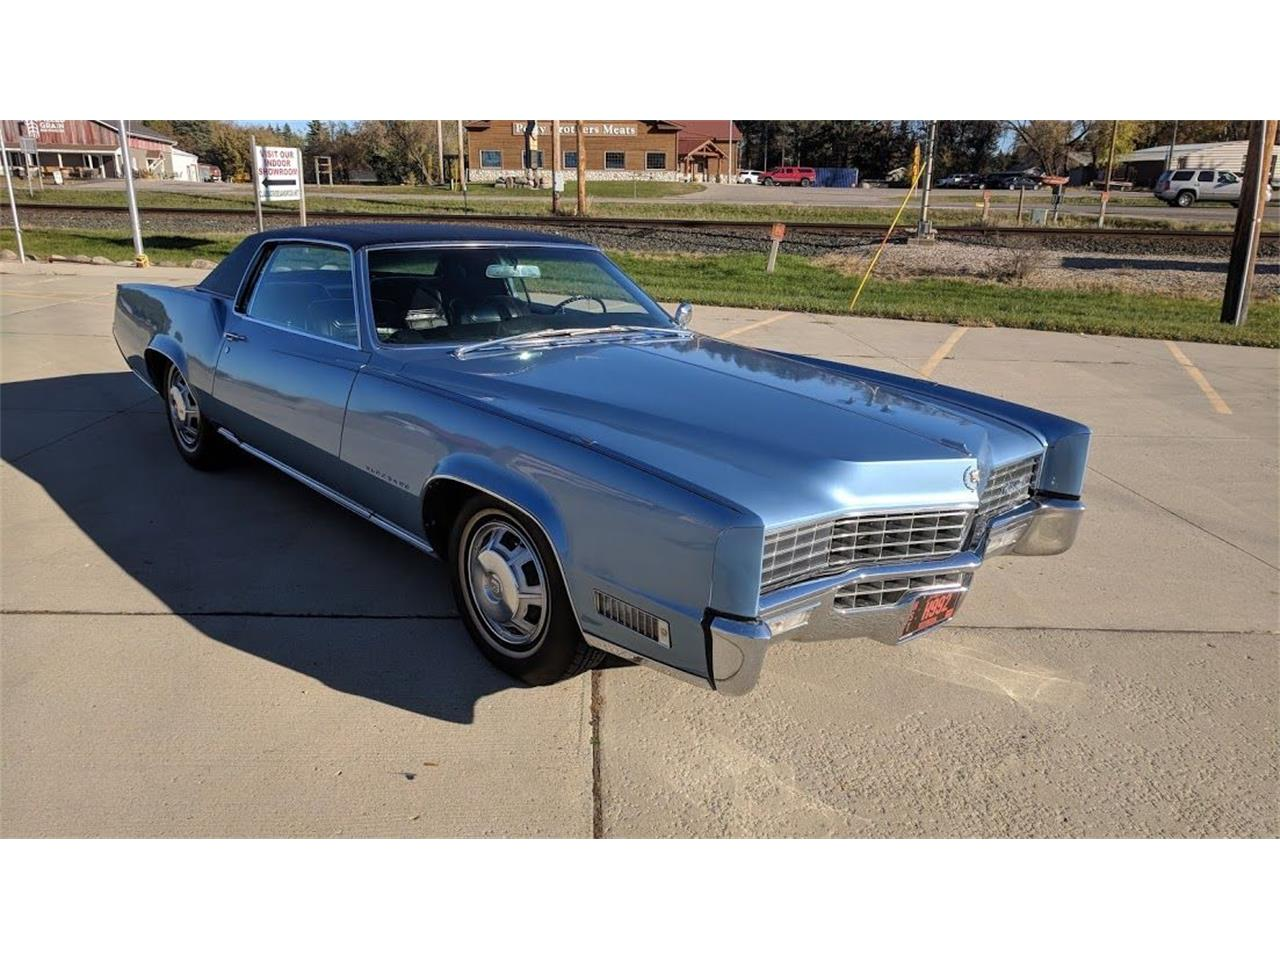 1967 Cadillac Eldorado (CC-1154788) for sale in Annandale, Minnesota